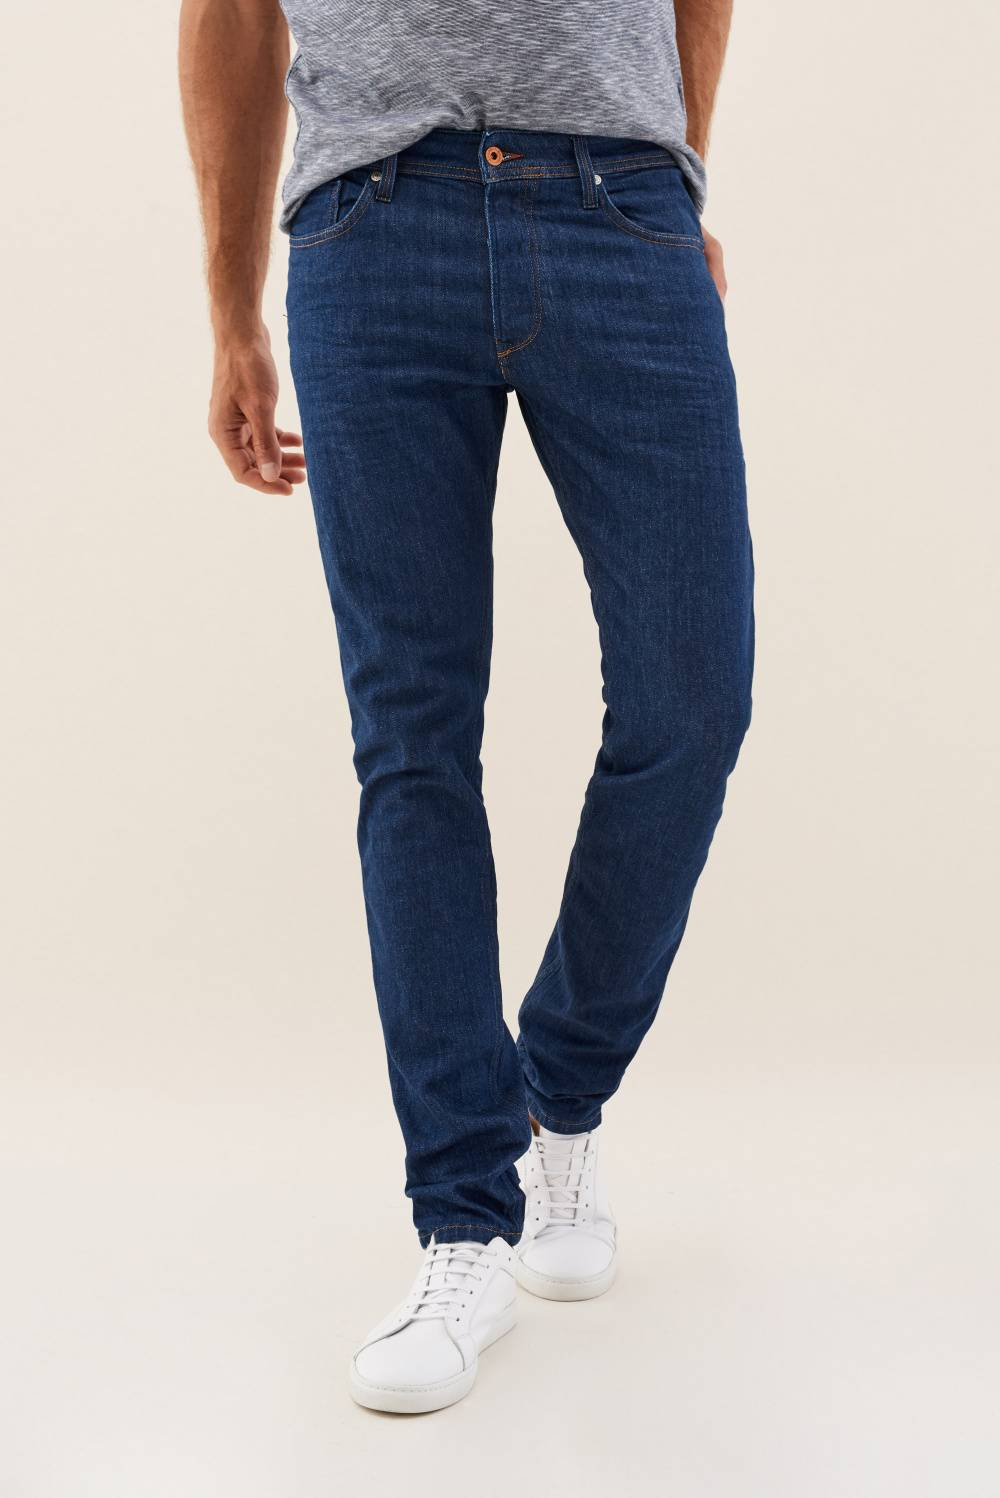 Lima tapered jeans in medium-dark blue - Salsa